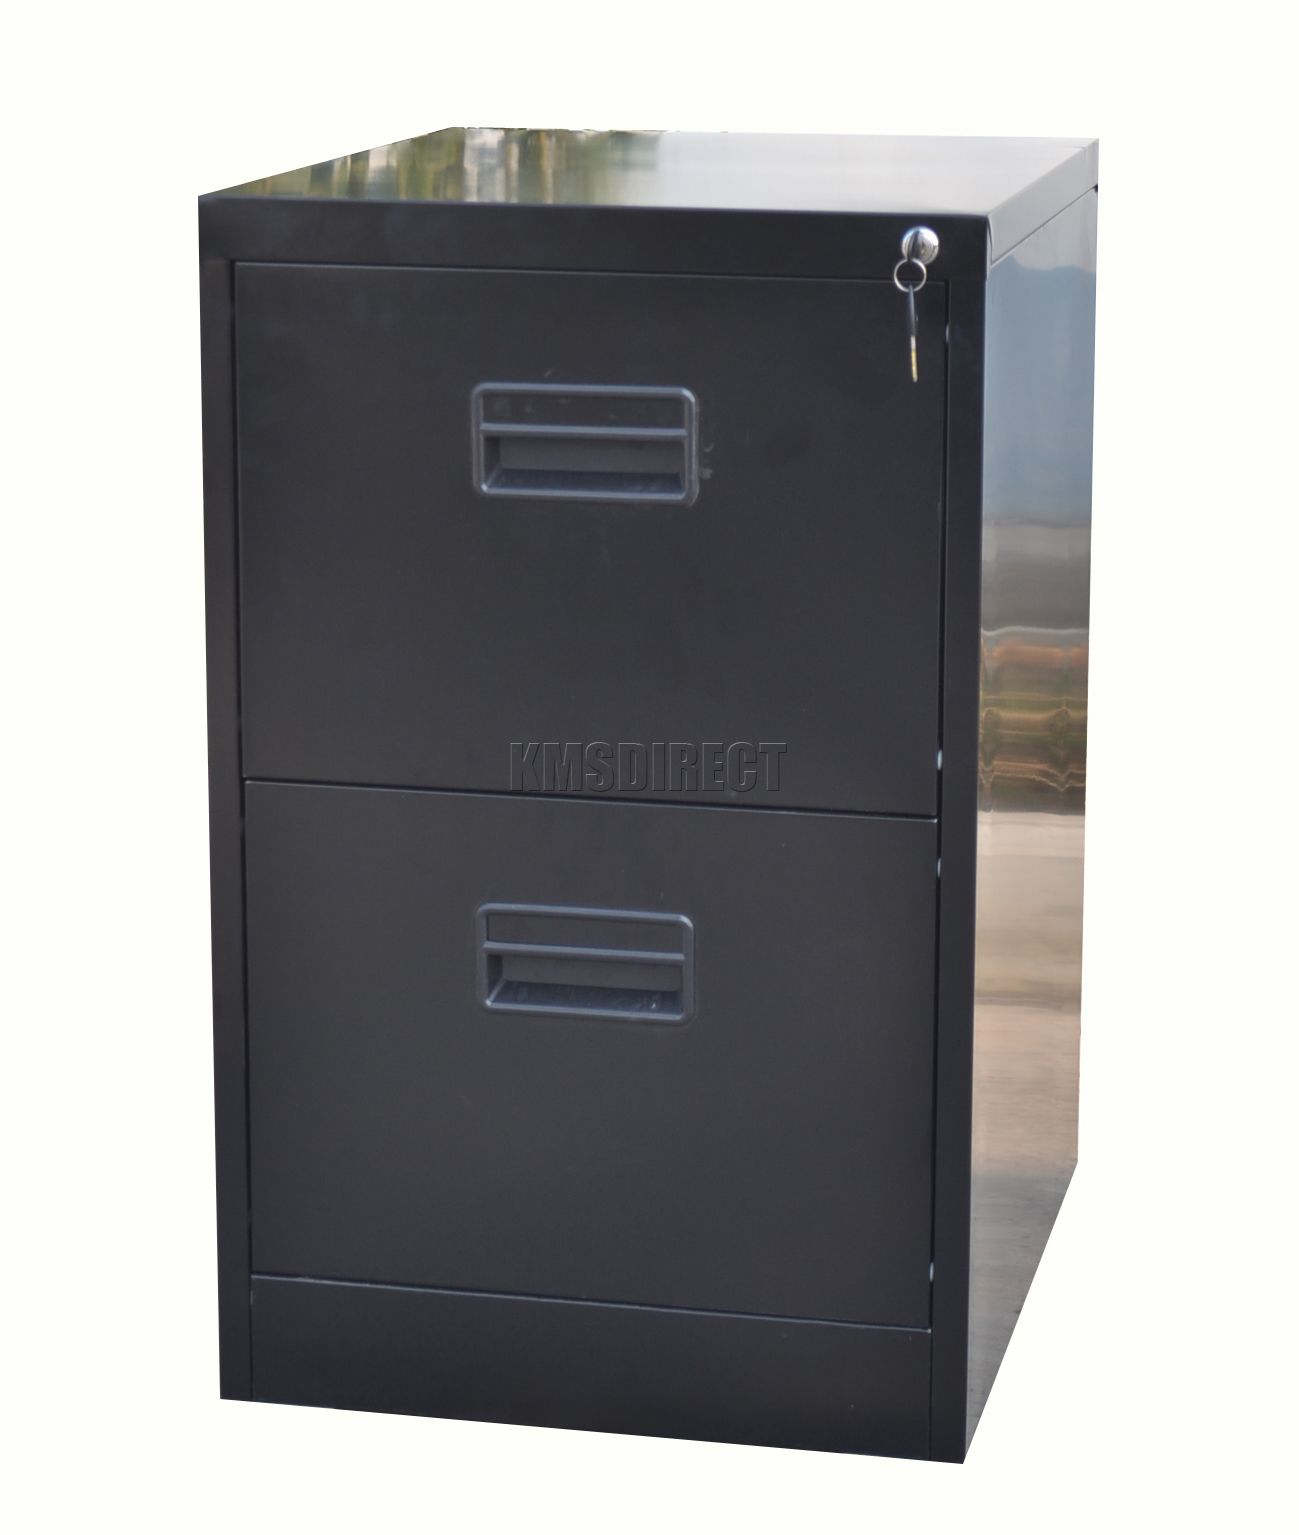 Home Office Filing Cabinet 2 Drawer A4 File Storage Metal Steel Lockable Black